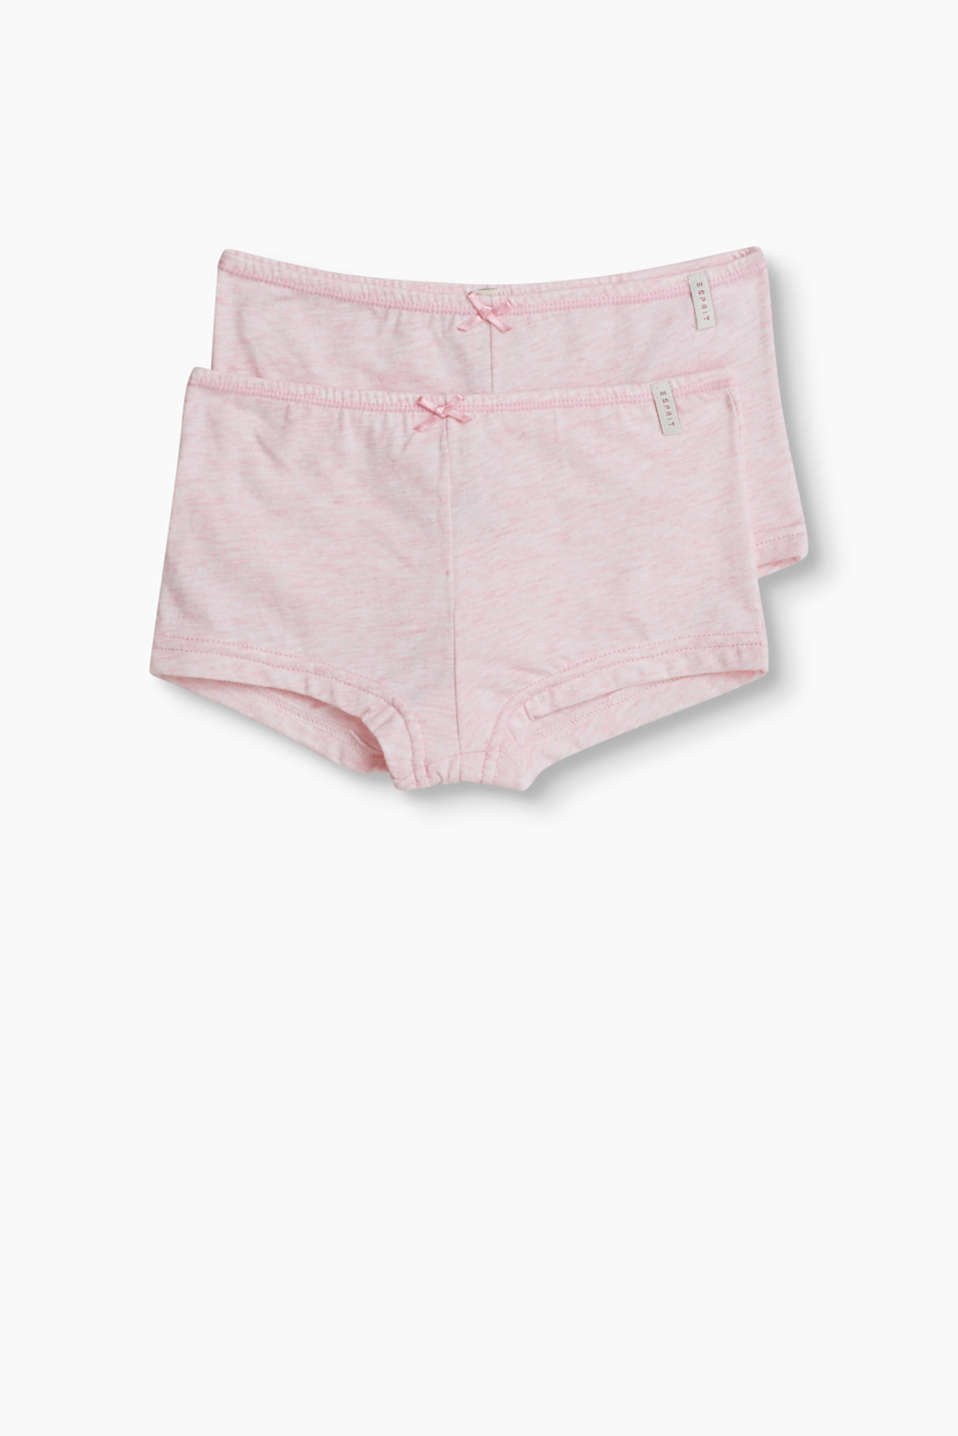 Esprit - Hot pants in a practical double pack